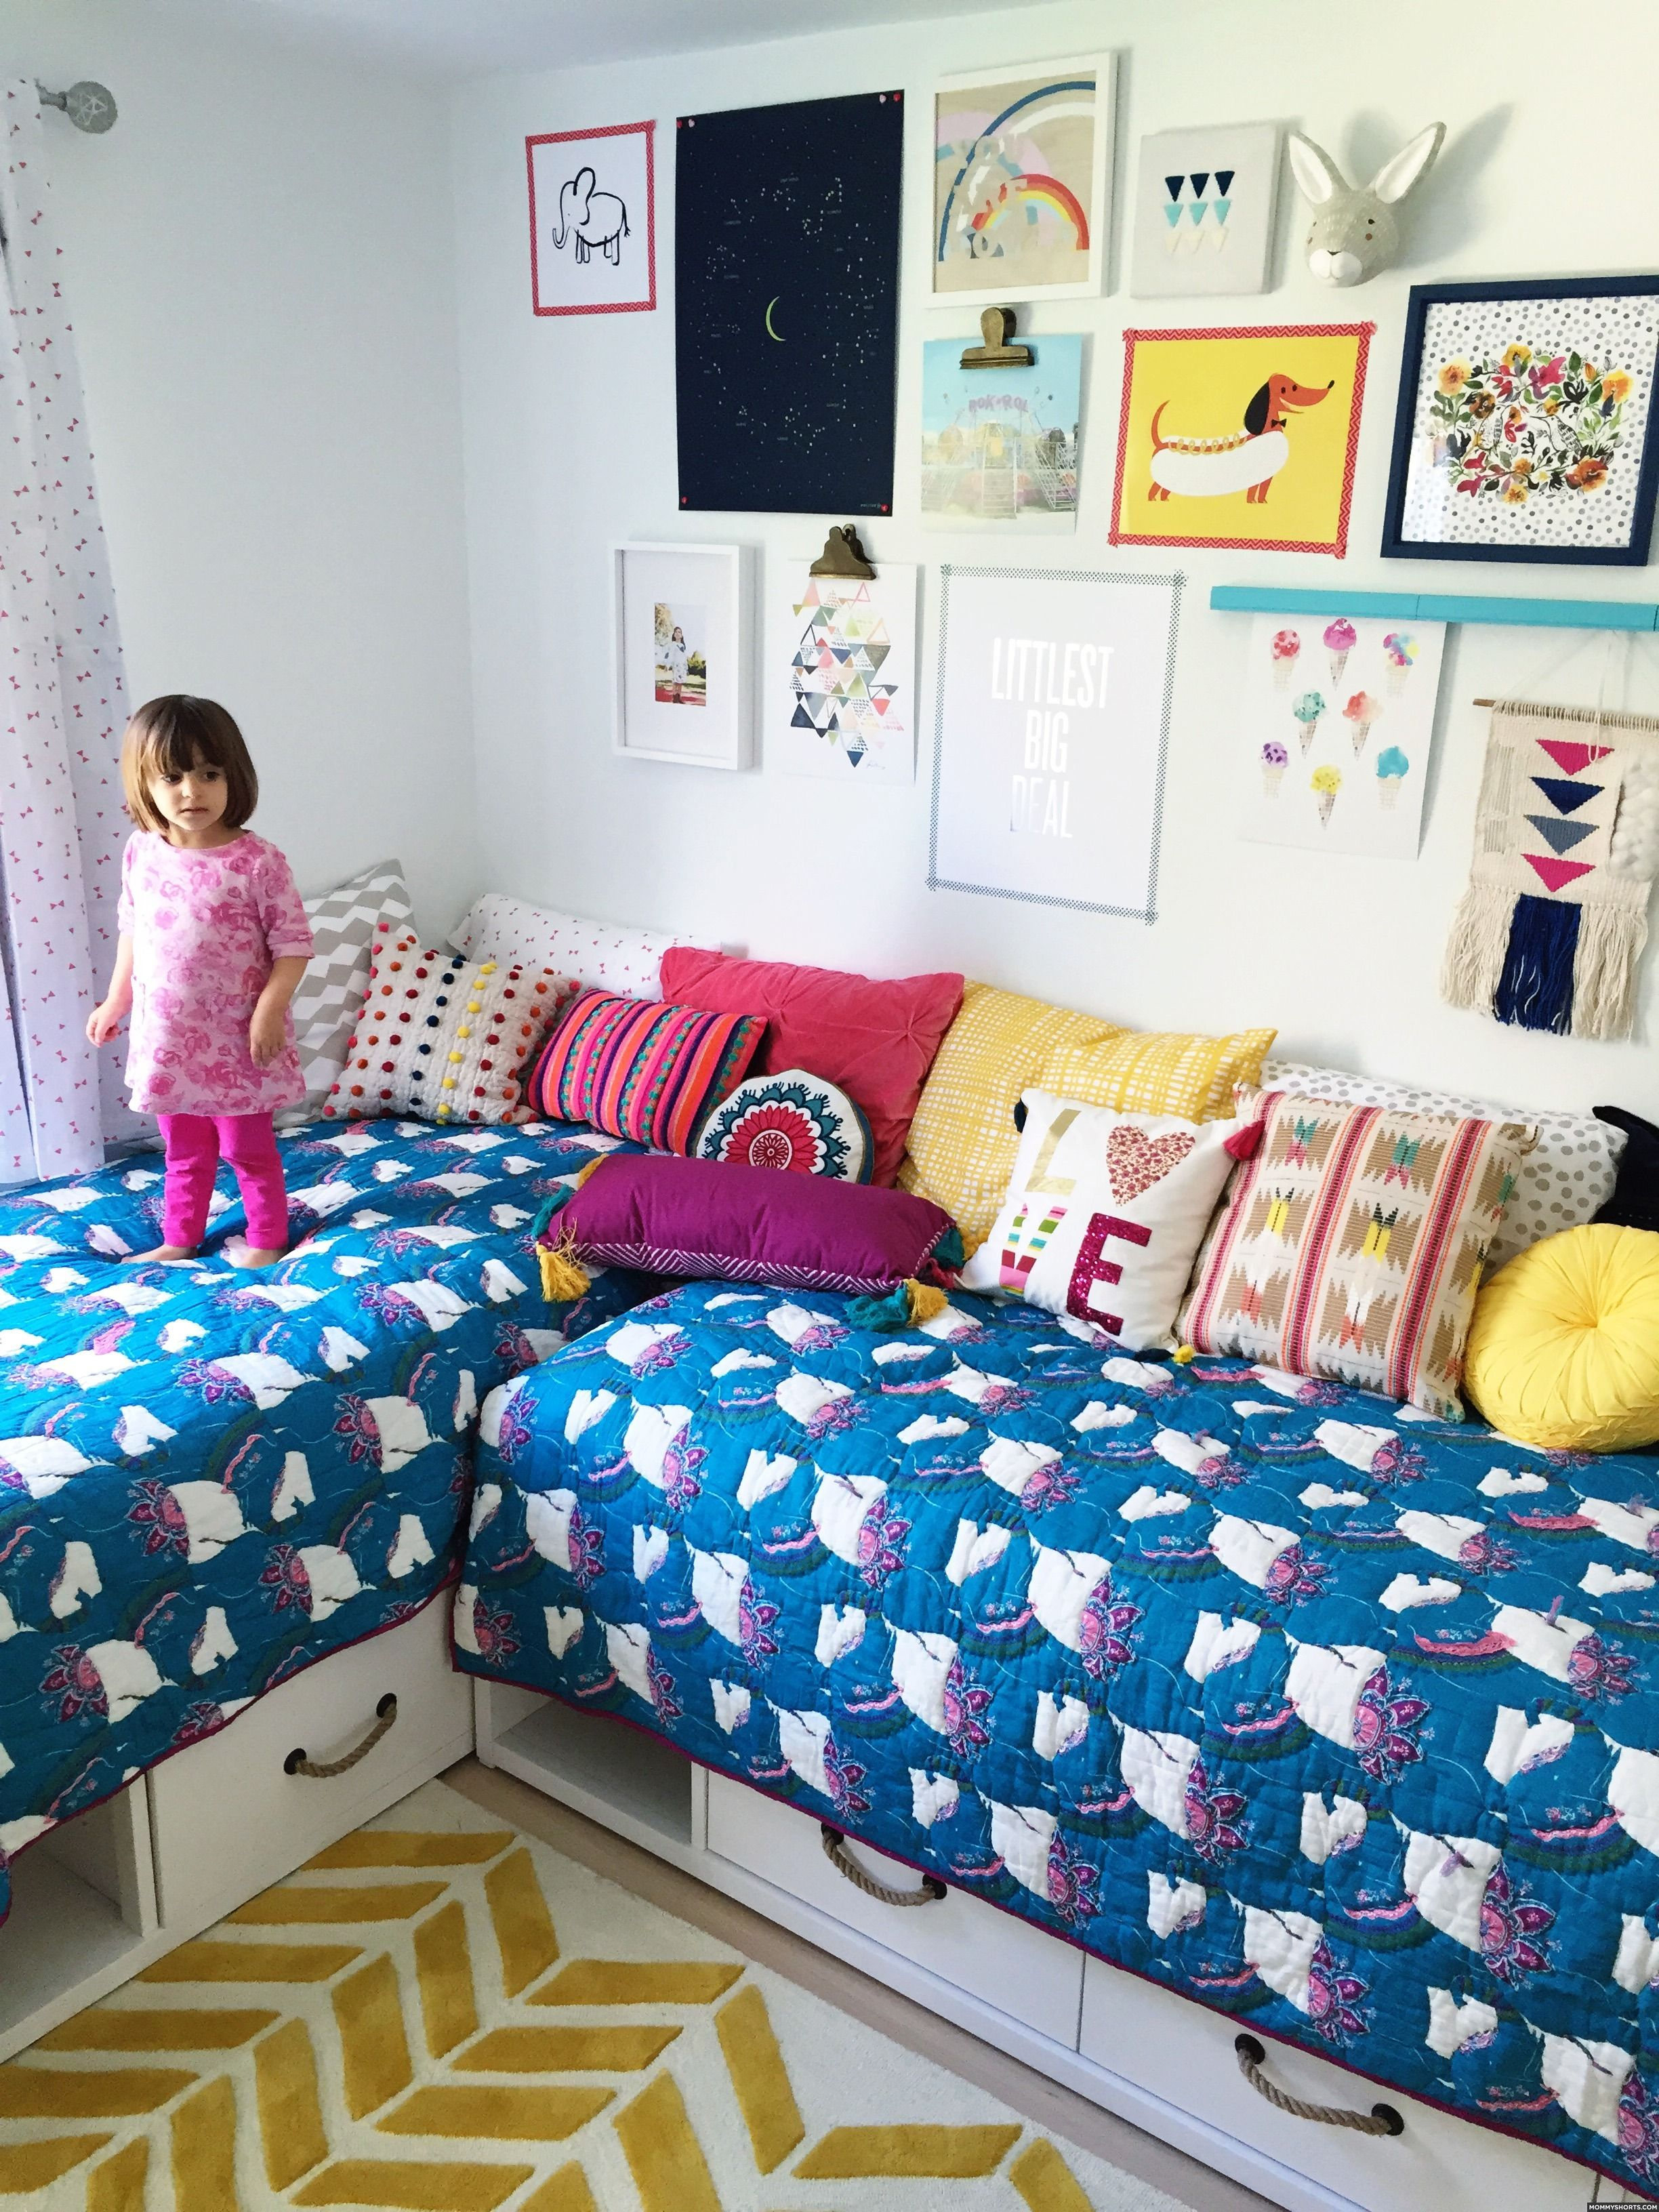 Shared Bedroom Ideas Teenagers A Modern Boho Bedroom For Mazzy And Harlow Shared